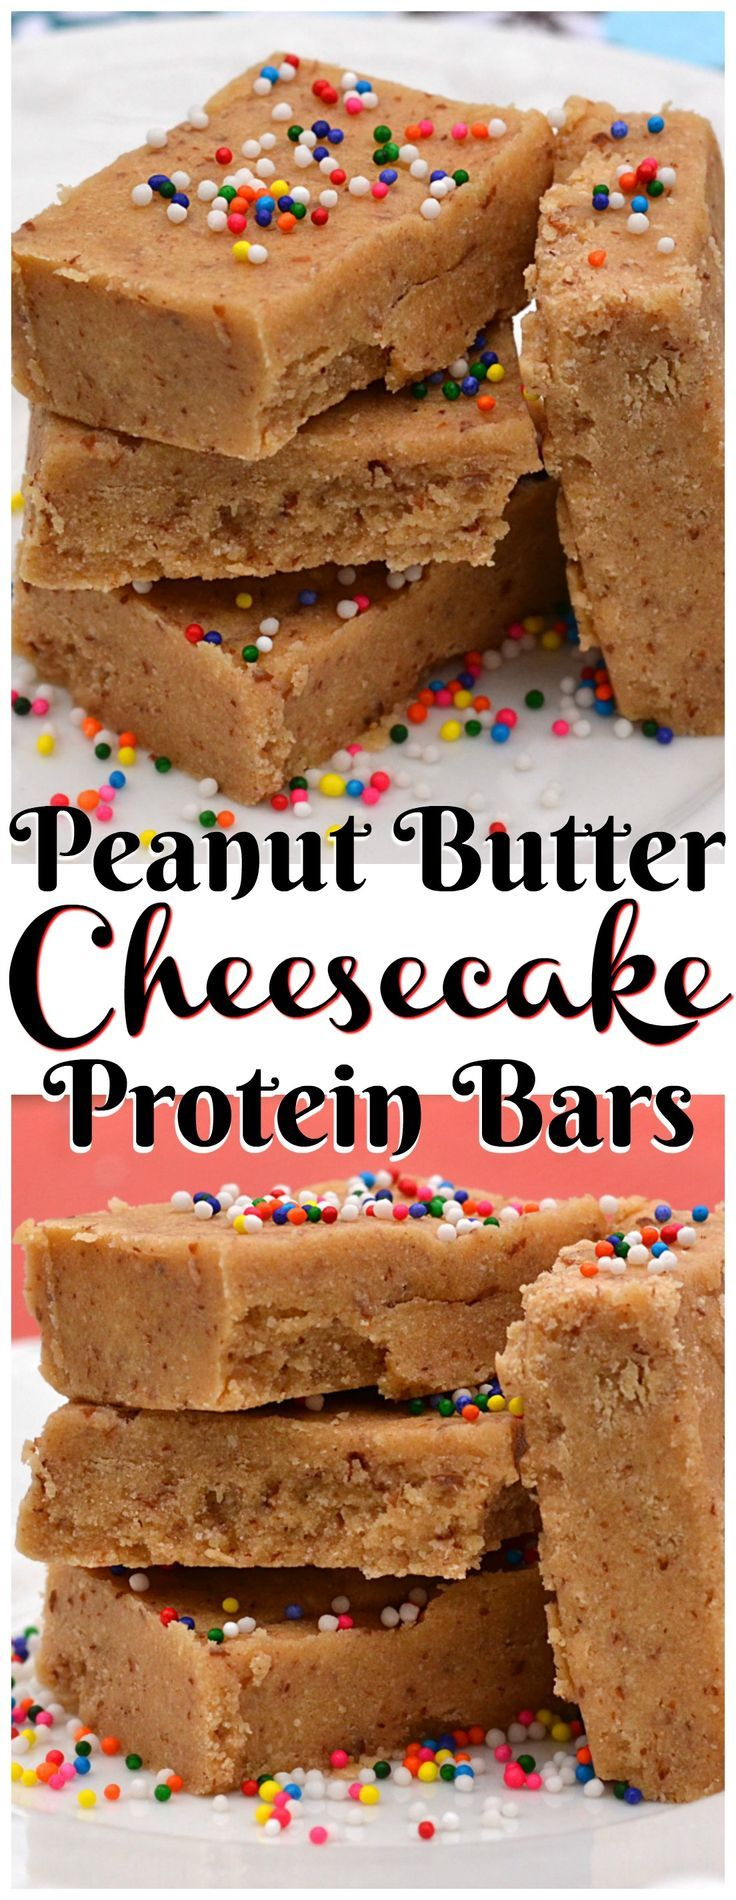 Low Carb Peanut Butter Cream Cheese Protein Bars - Crafty Cooking Mama